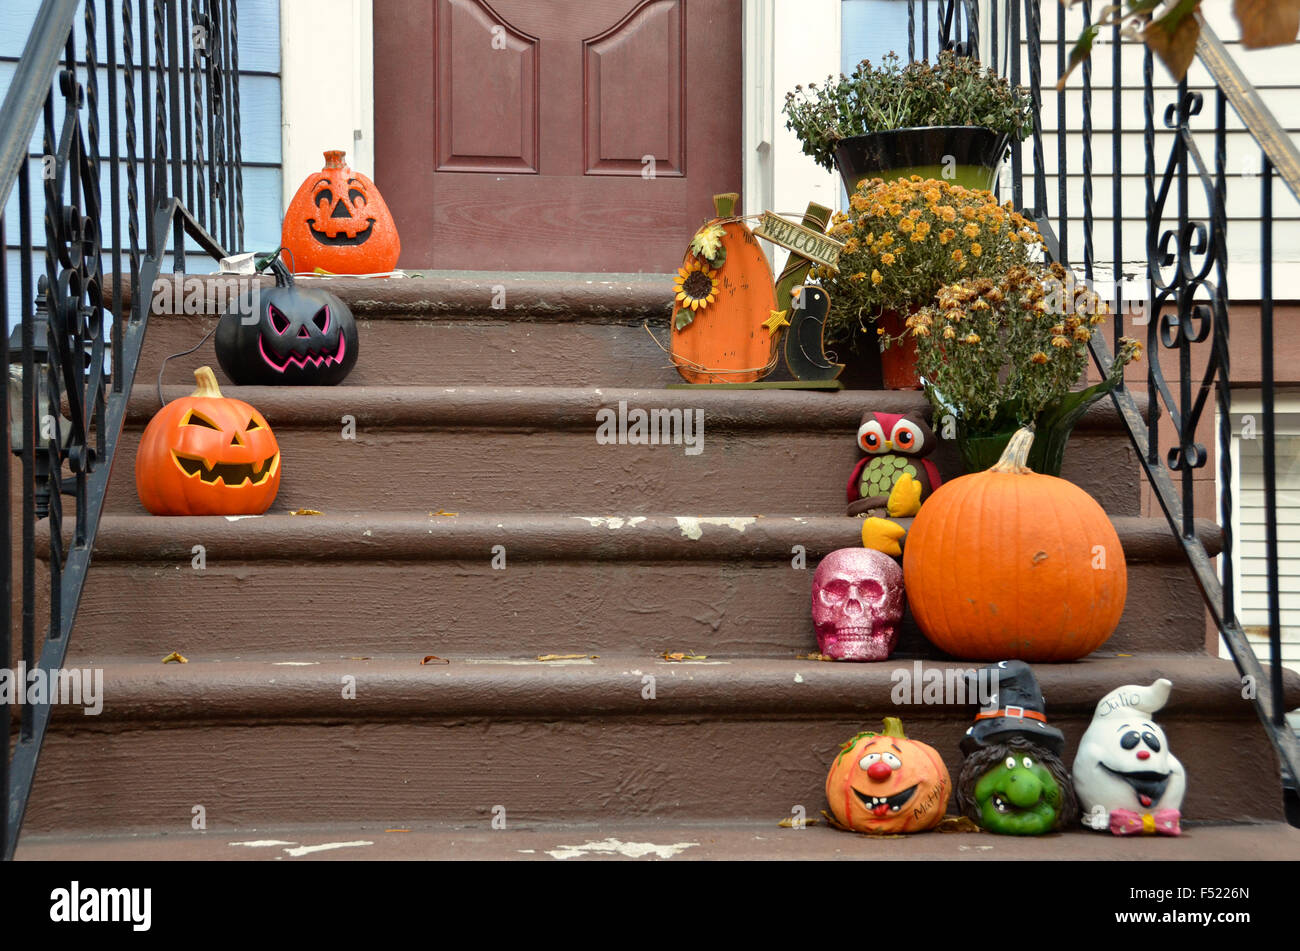 stock photo halloween decorations brooklyn park slope new york pumpkins for sale outside shop - Halloween Decorations On Sale